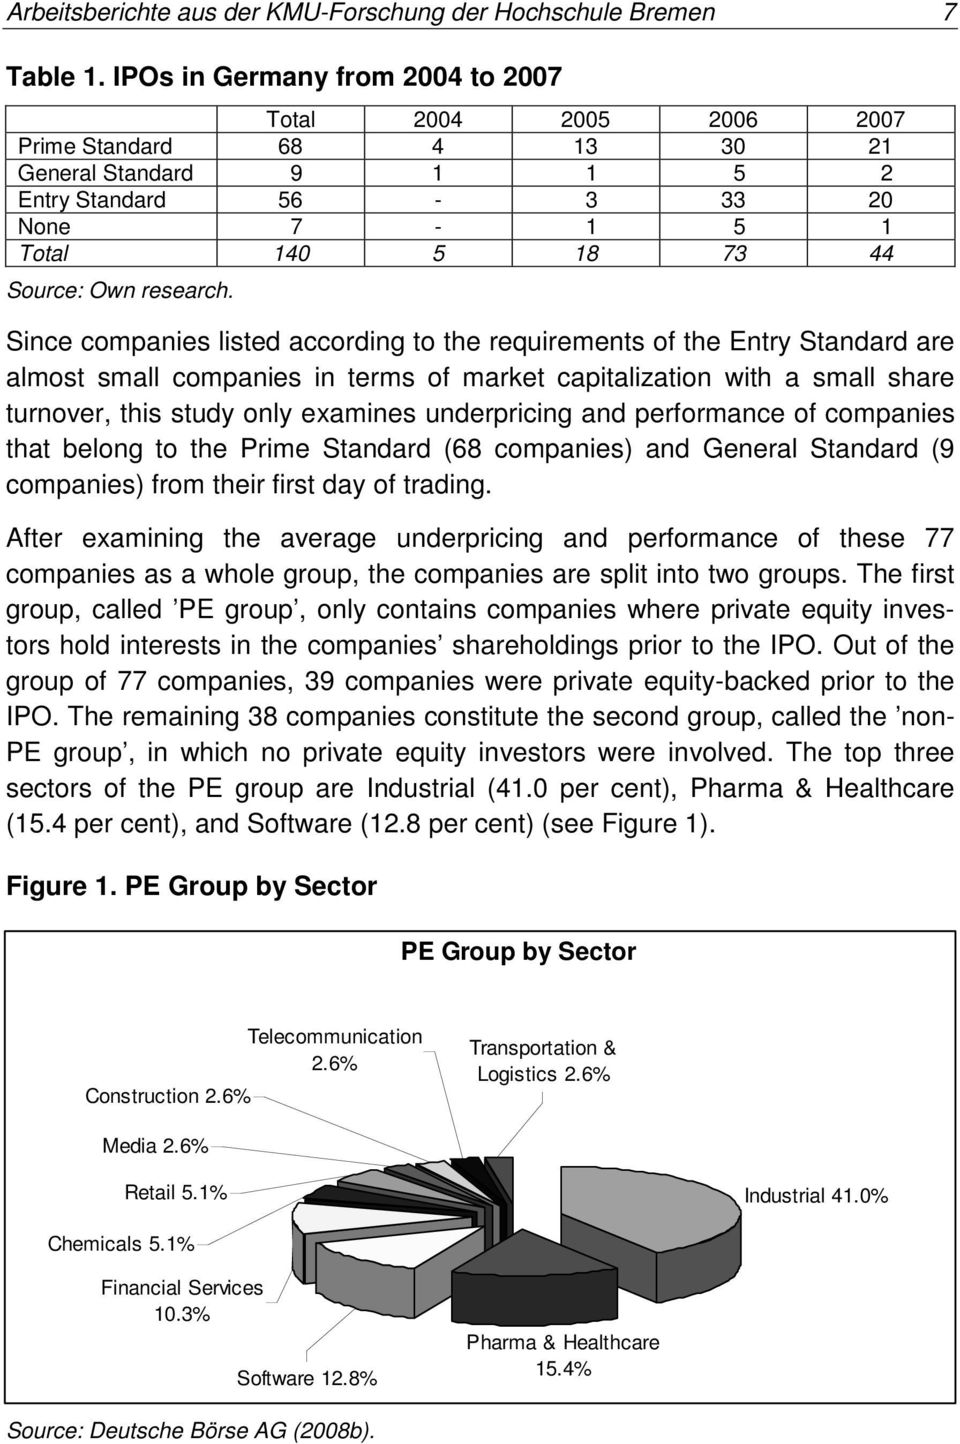 Since companies listed according to the requirements of the Entry Standard are almost small companies in terms of market capitalization with a small share turnover, this study only examines